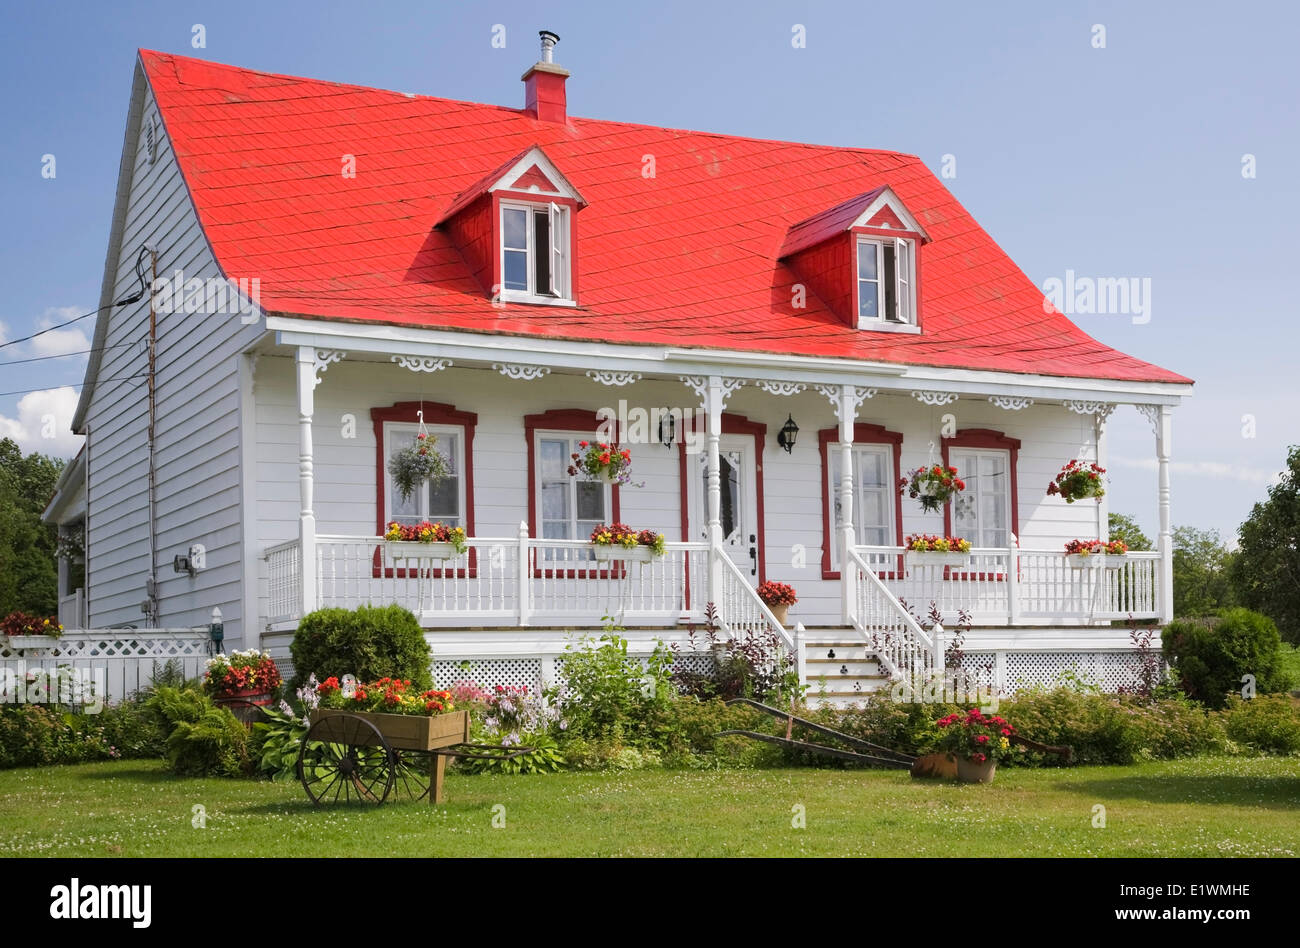 White With Red Trim Old Canadiana Cottage Style